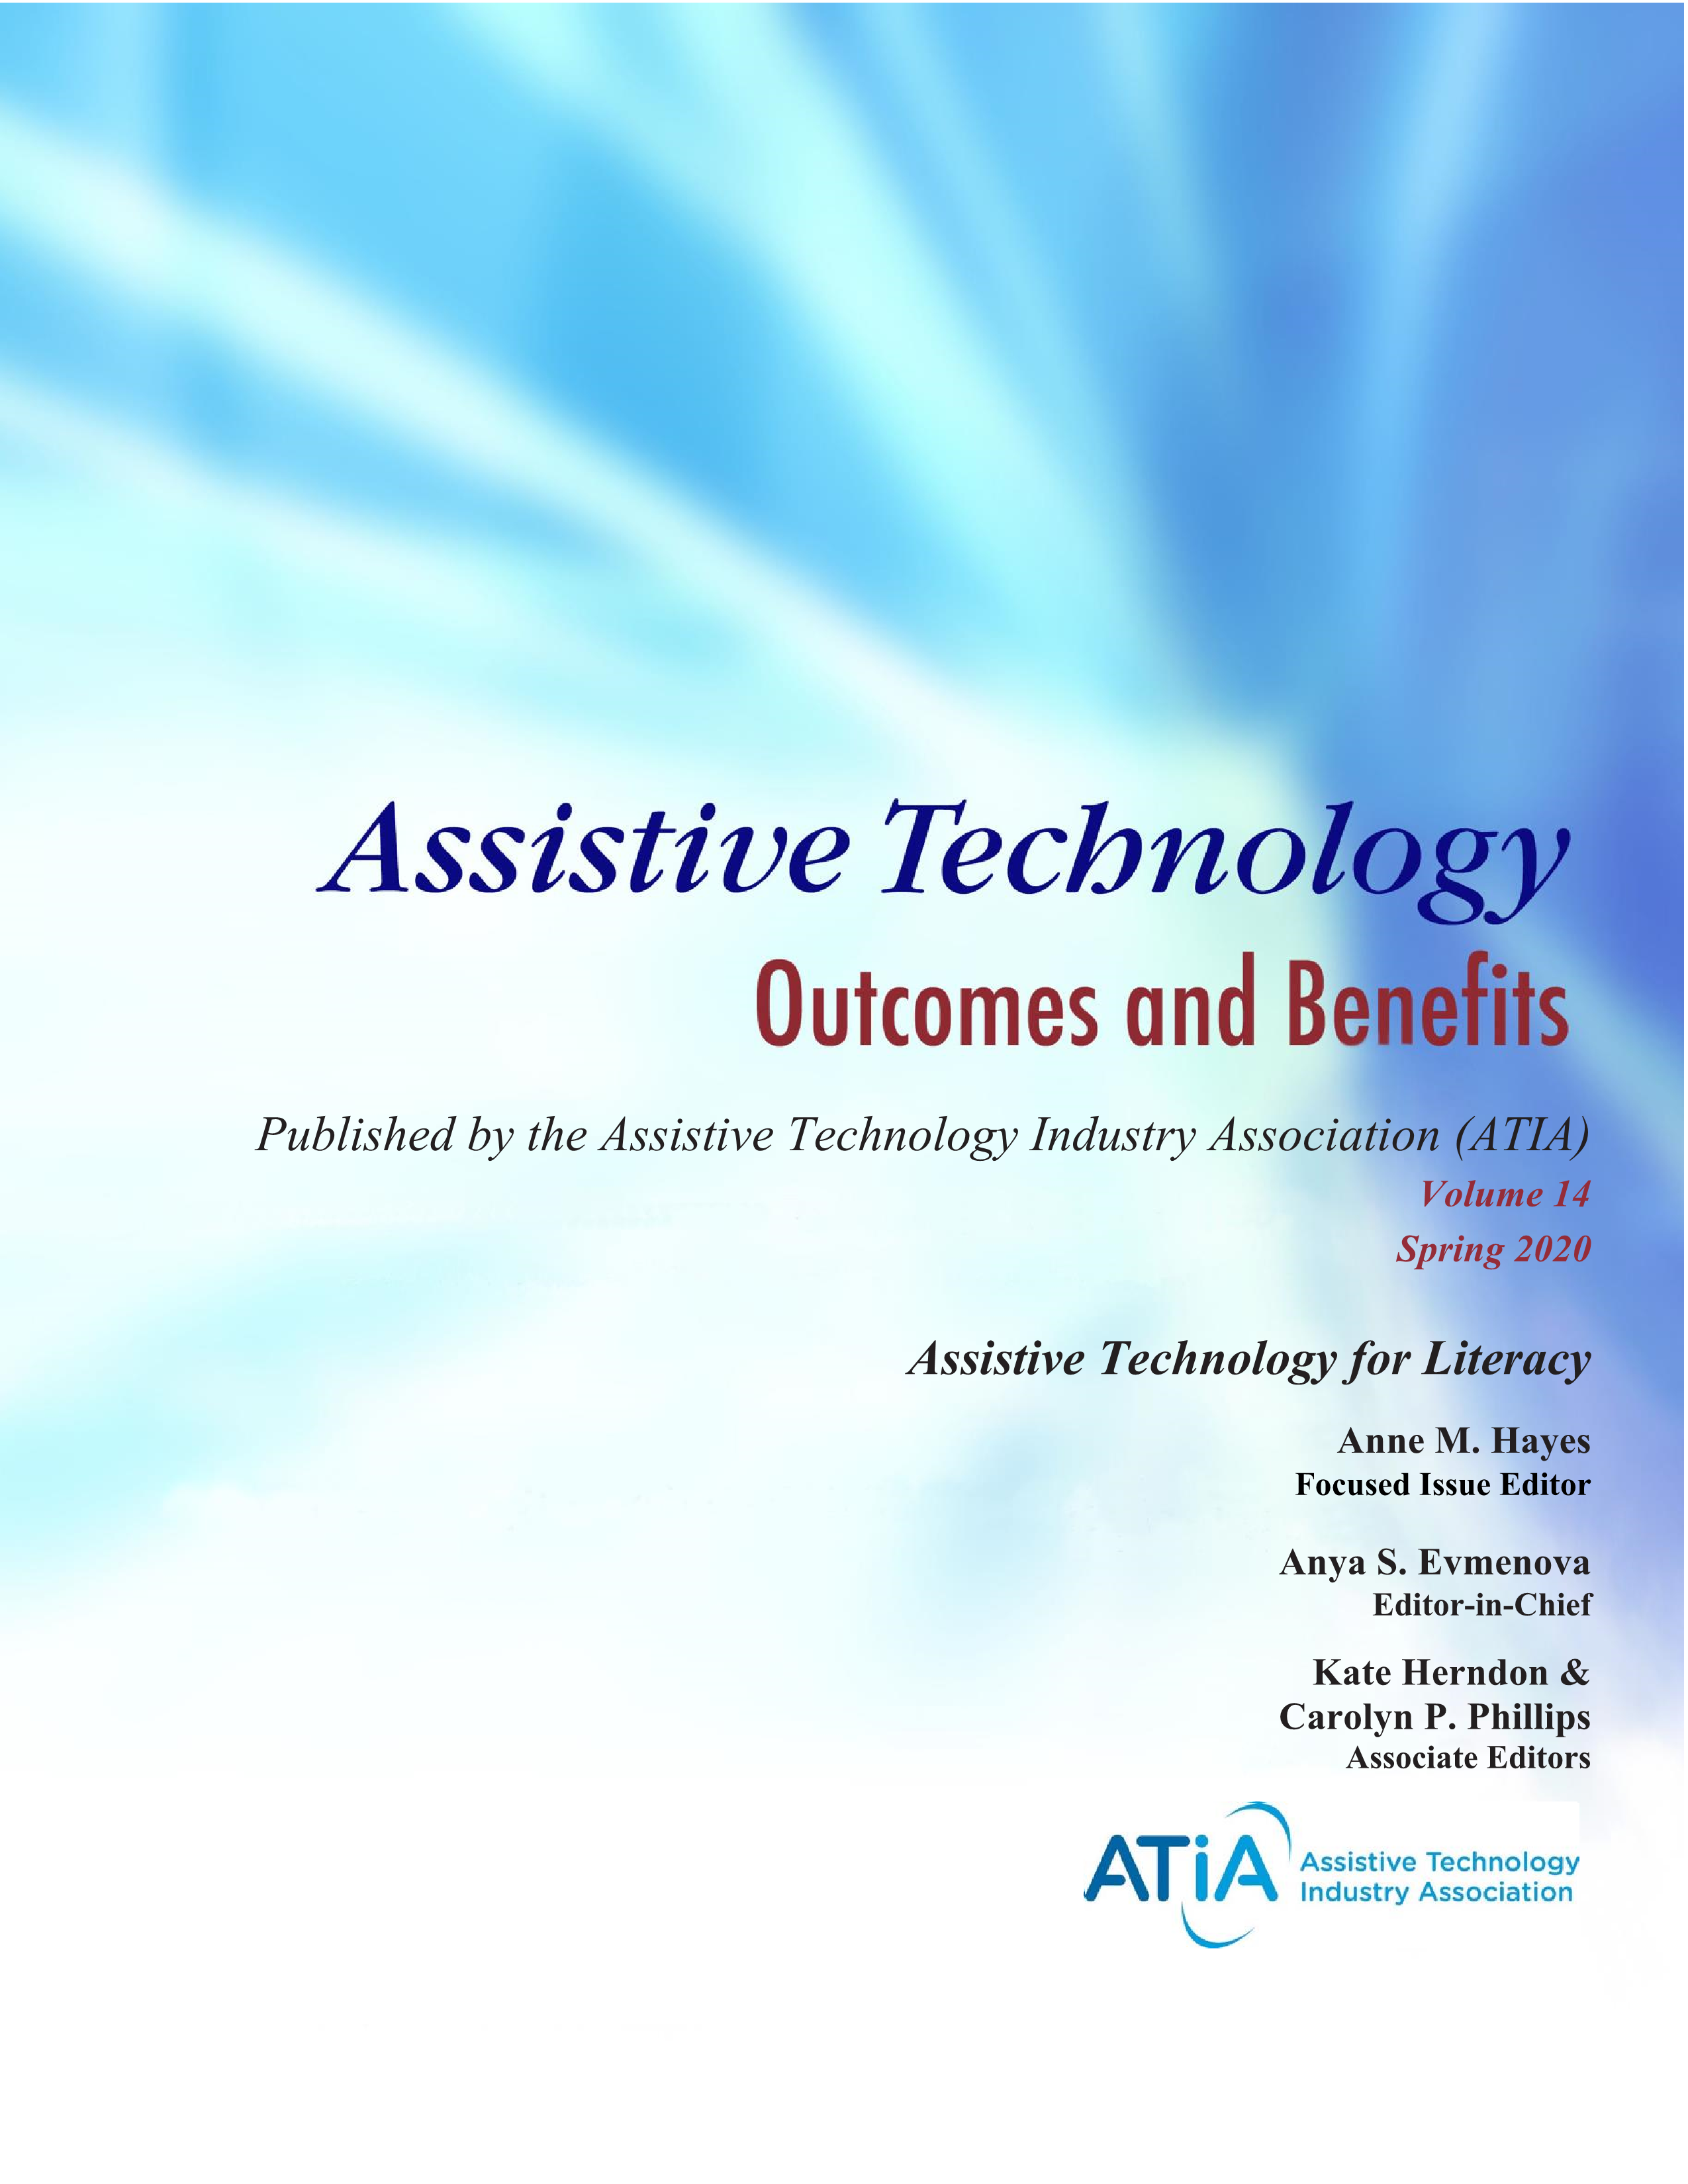 Assistive Technology Outcomes & Benefits